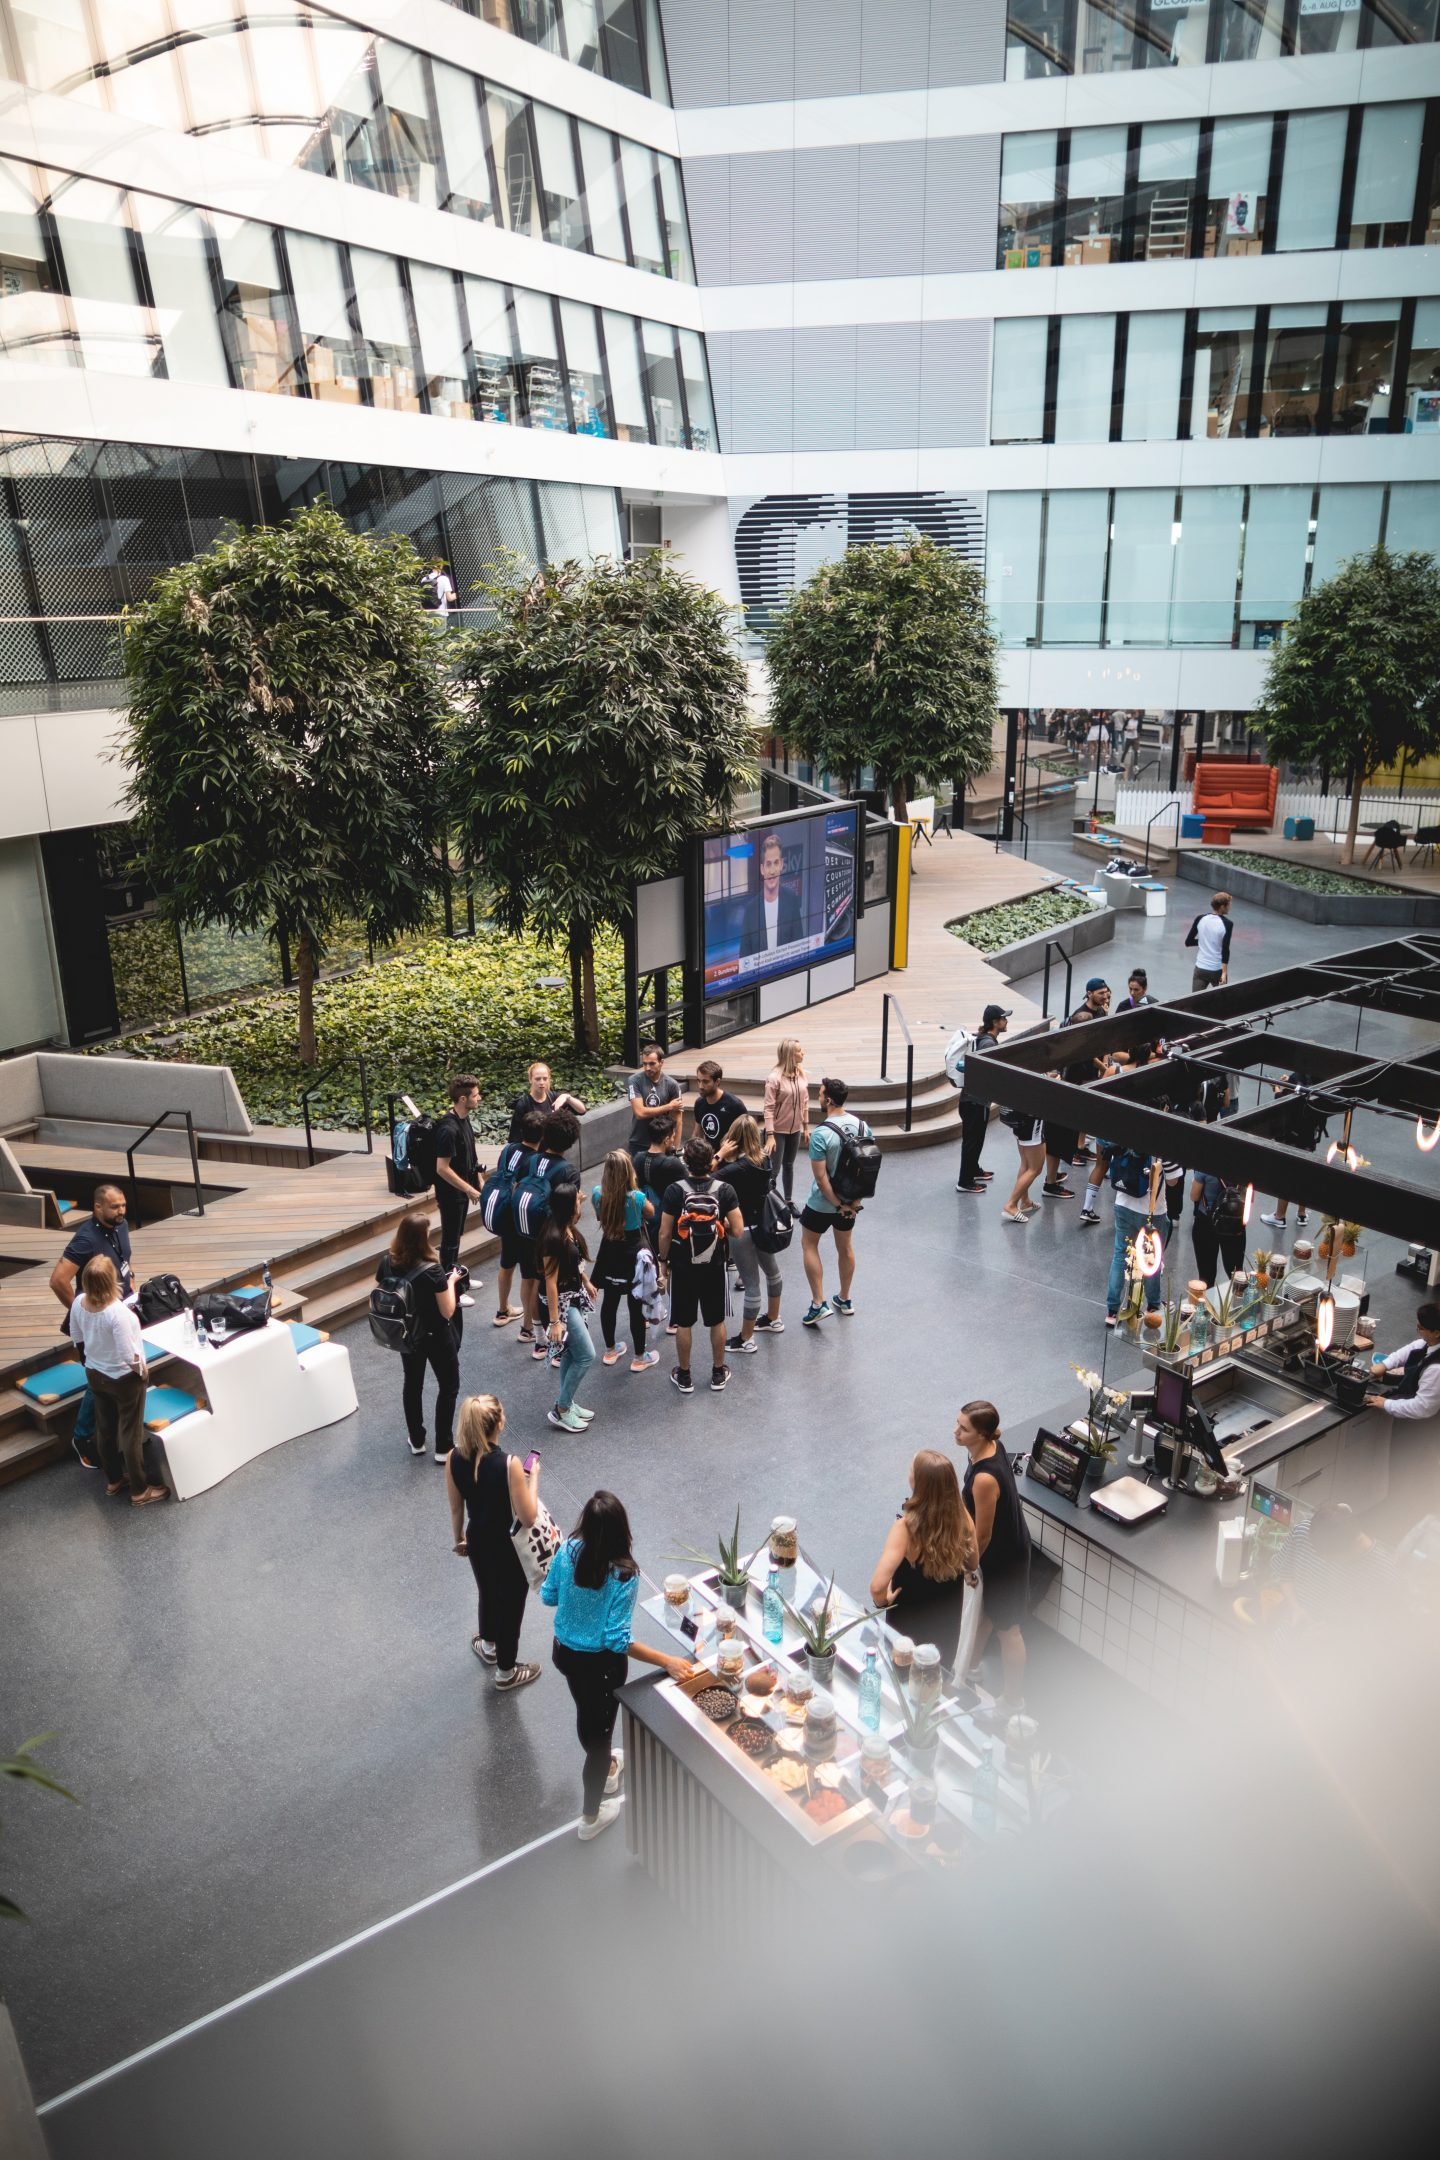 adidas athletes and employees at cafeteria atadidas headquarter Herzogenaurach showing the workplace culture at adidas with collaboration